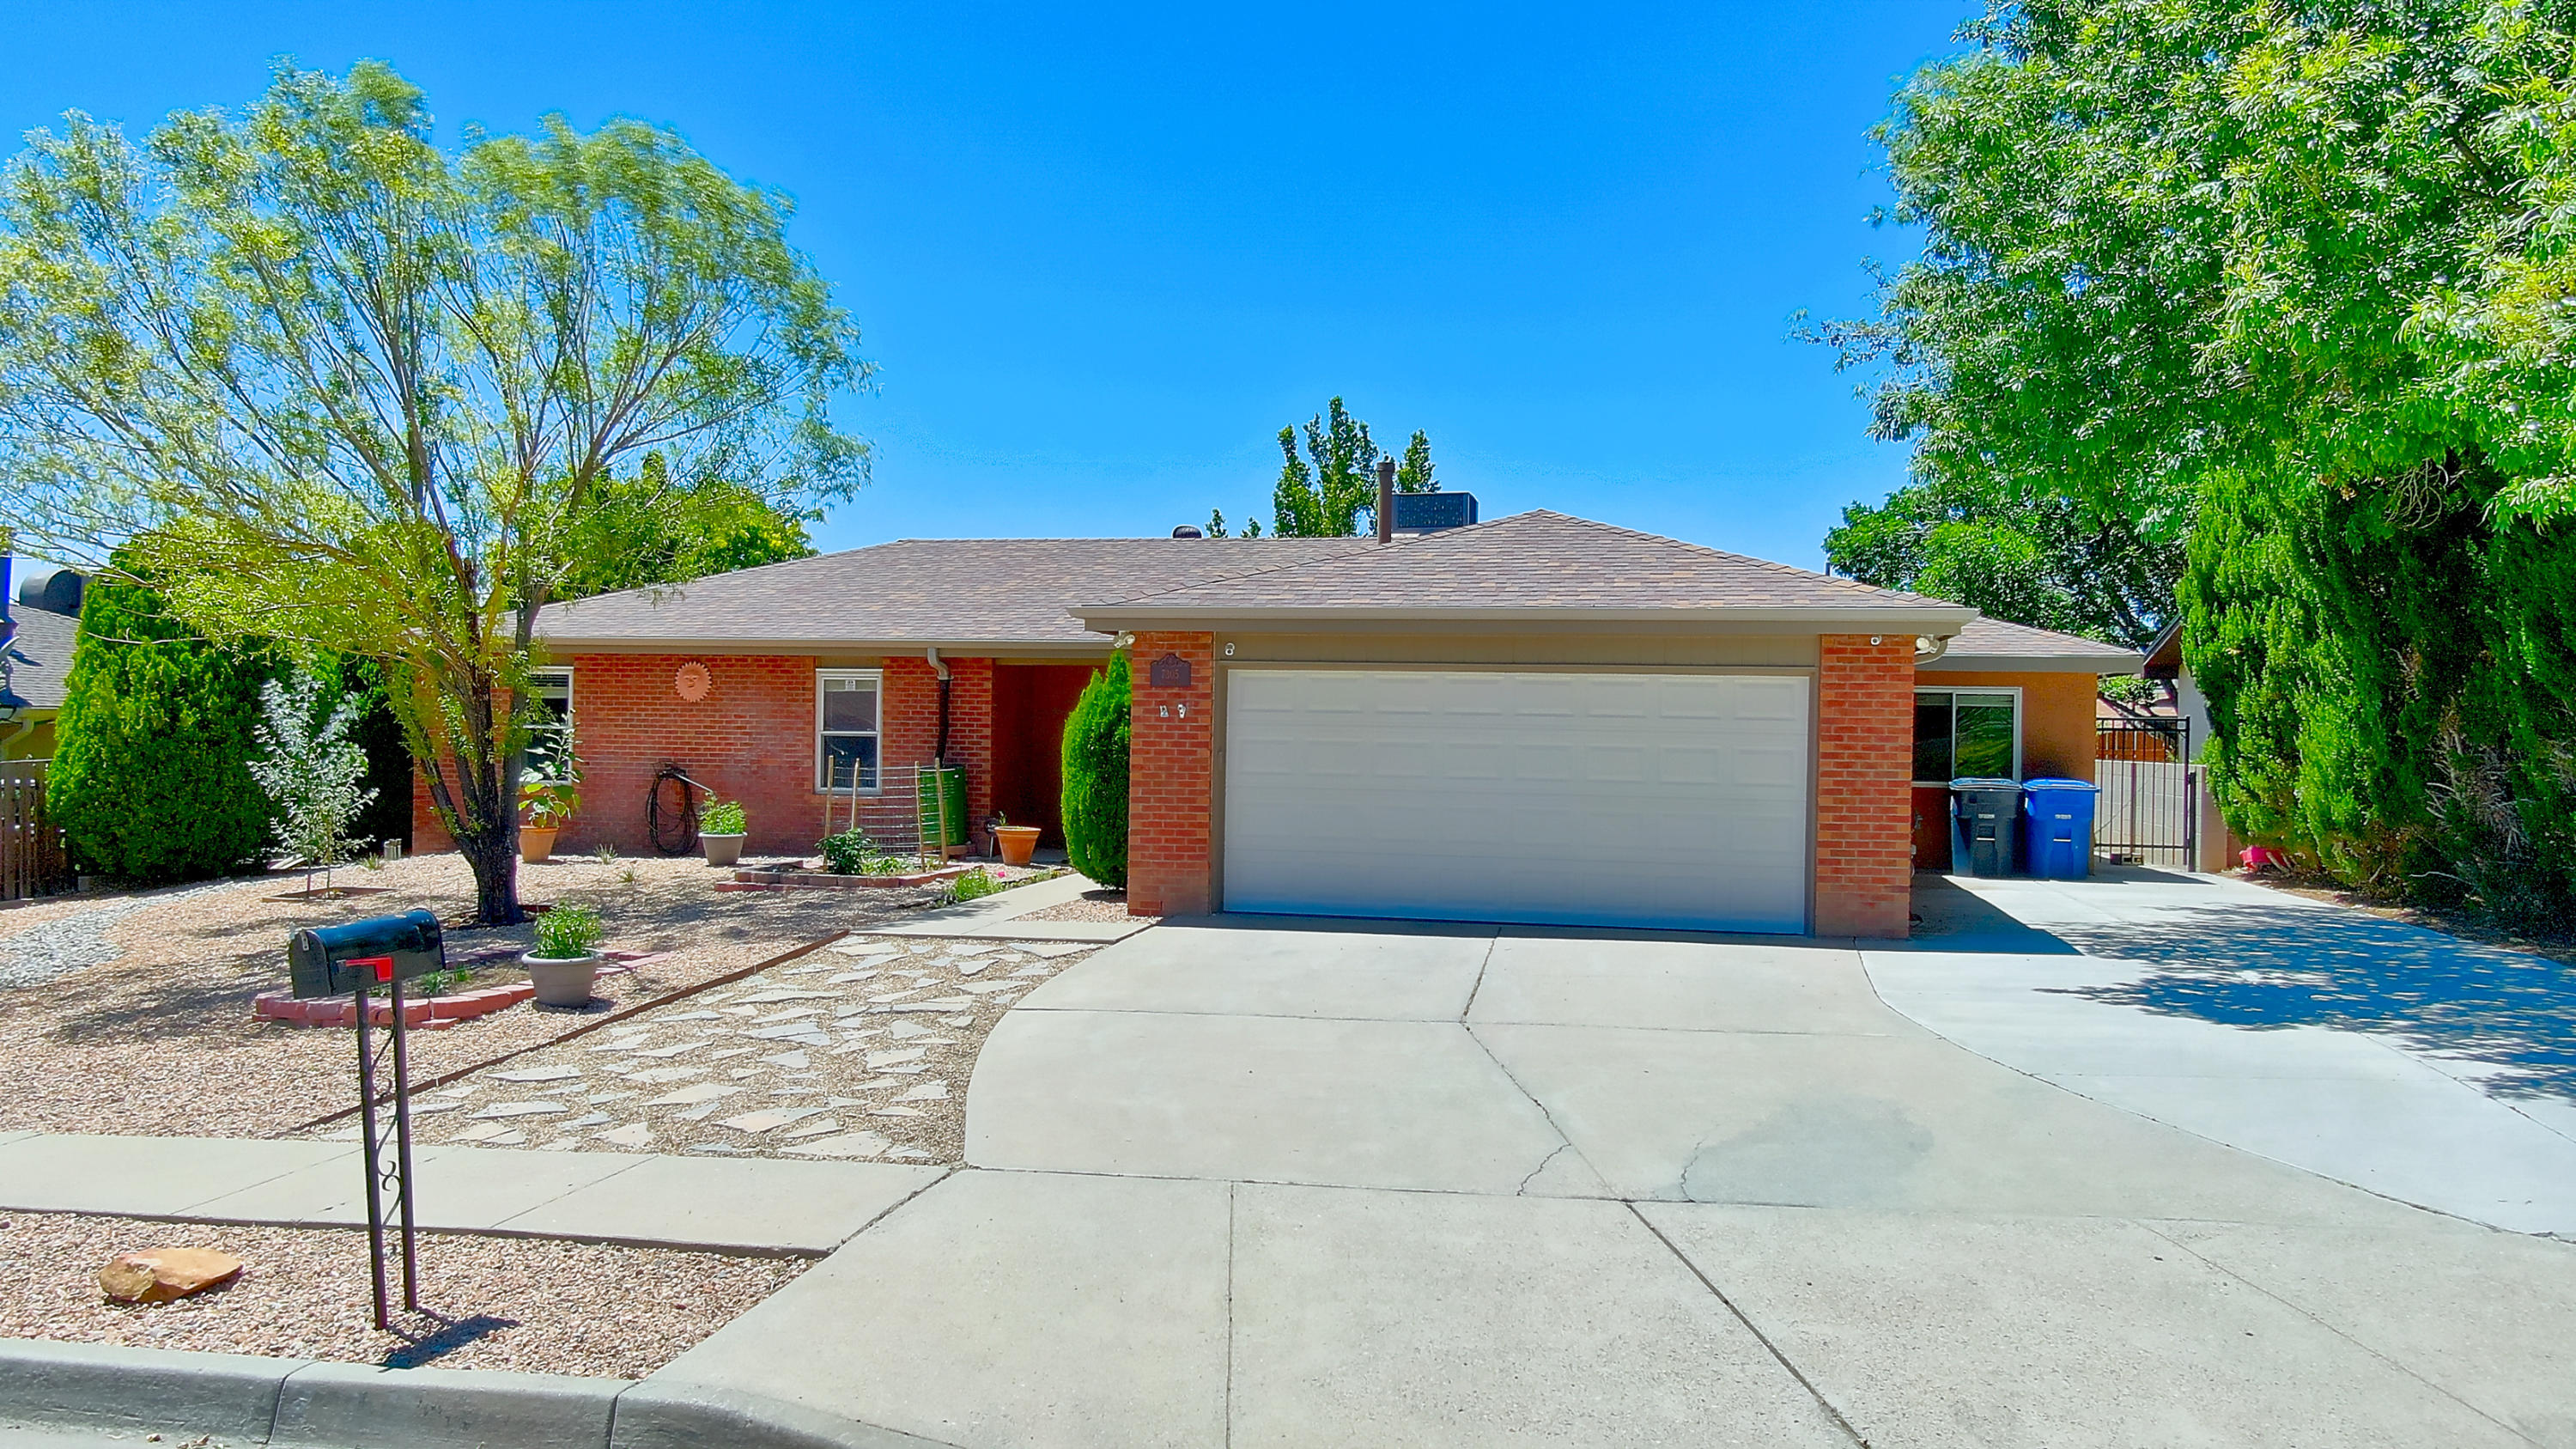 7305 GETTYSBURG Road NE Property Photo - Albuquerque, NM real estate listing